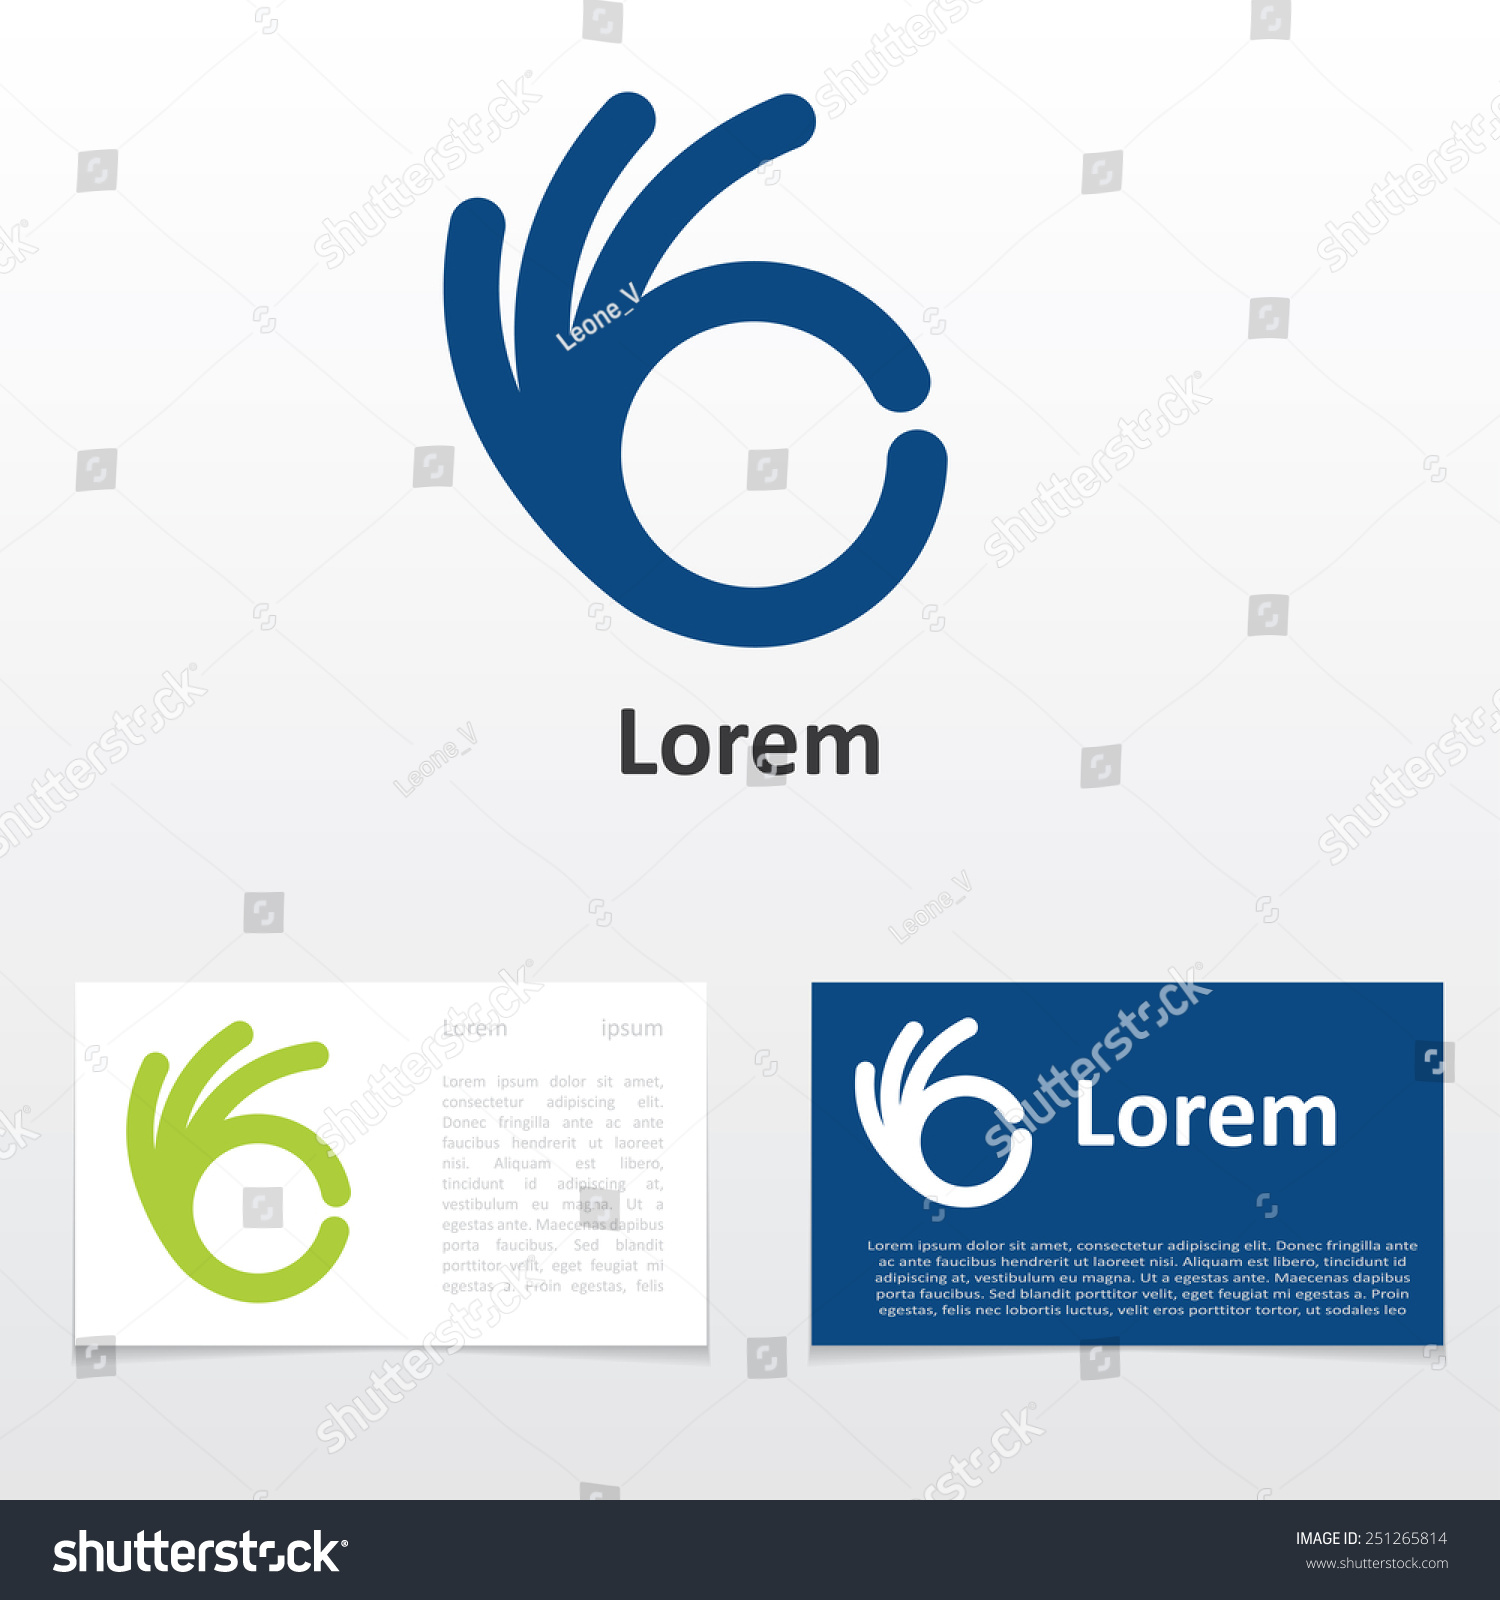 Sign ok logo design business card stock vector 251265814 sign ok logo design business card magicingreecefo Image collections